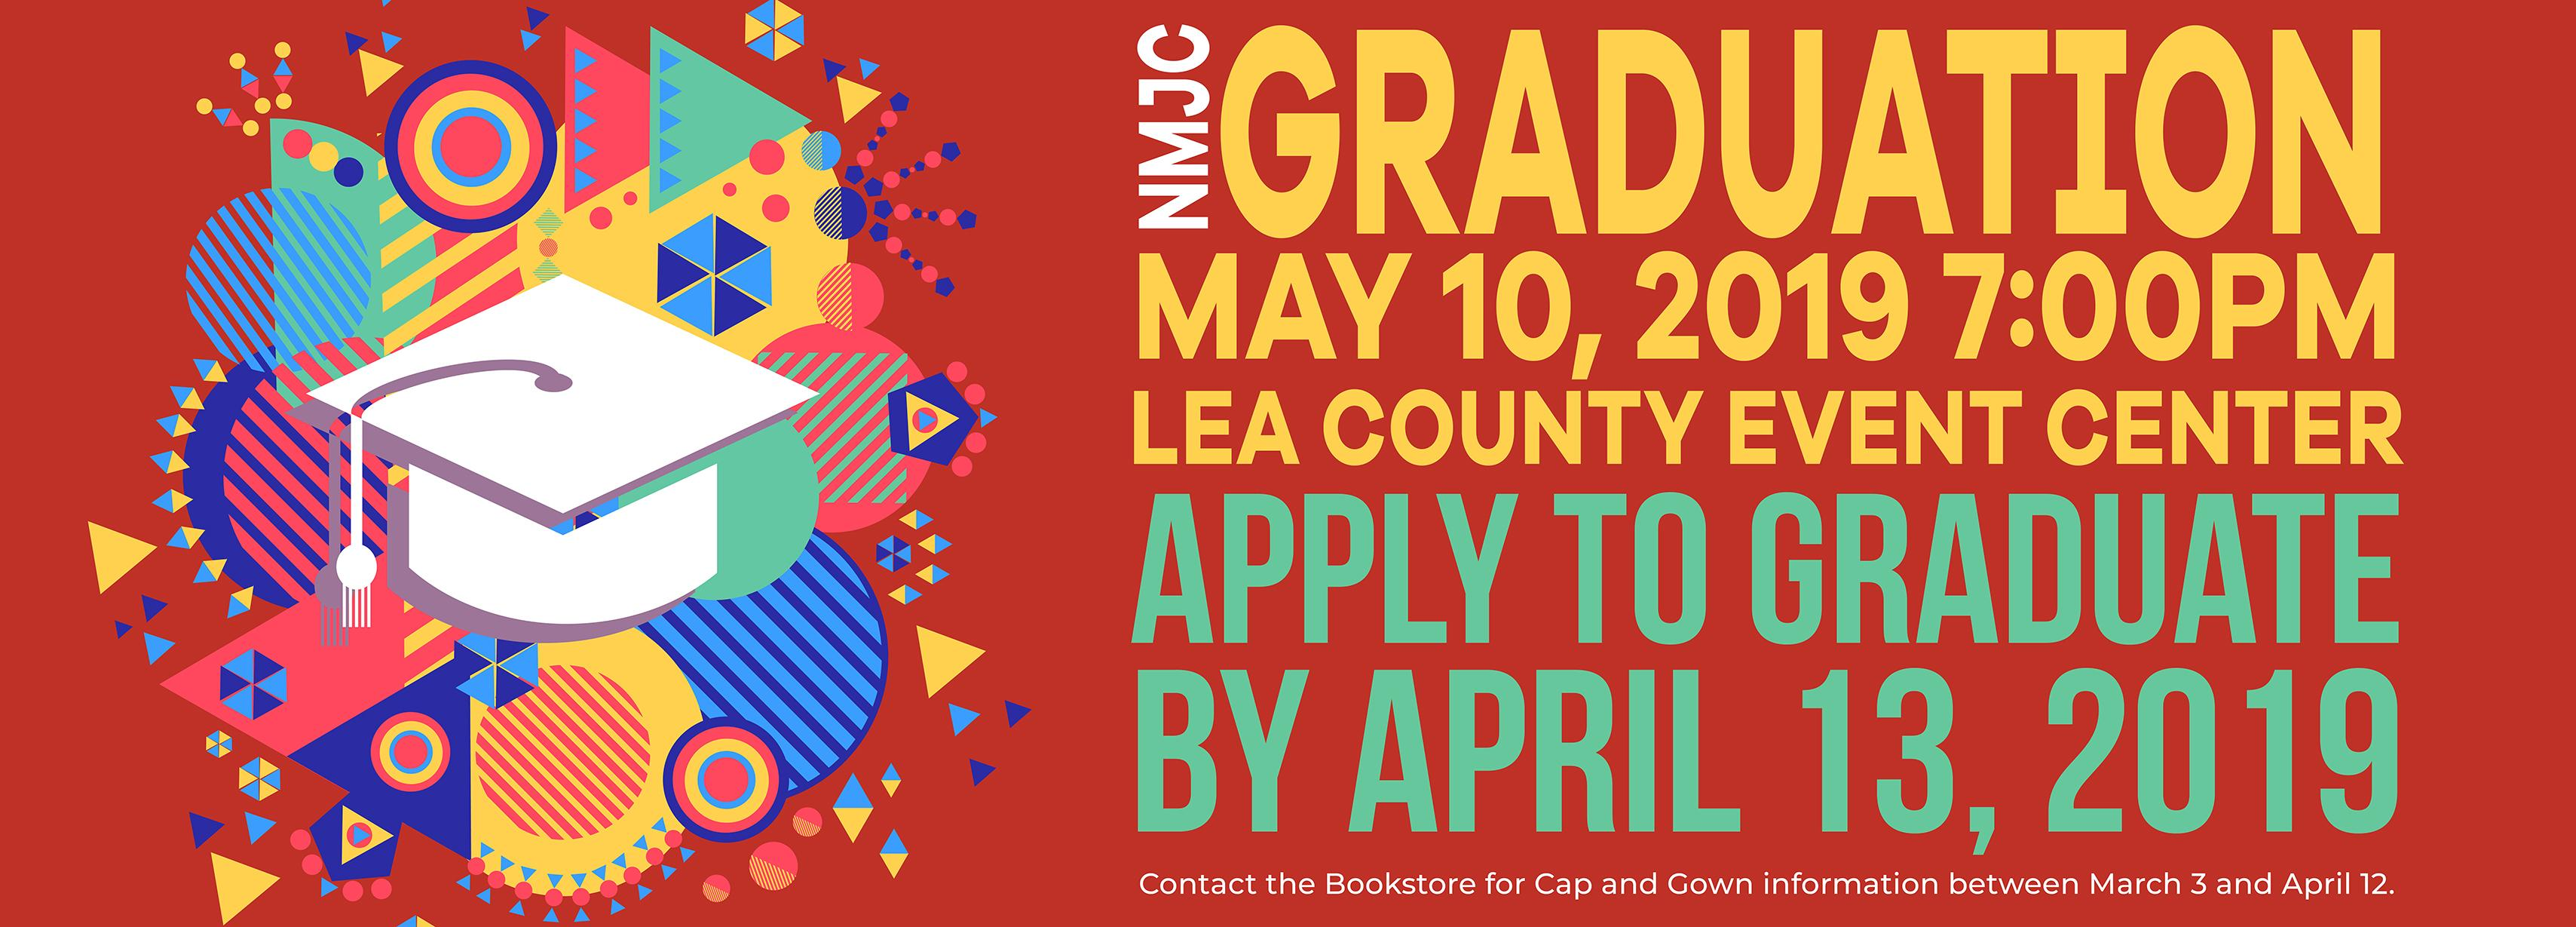 Apply to graduate from NMJC